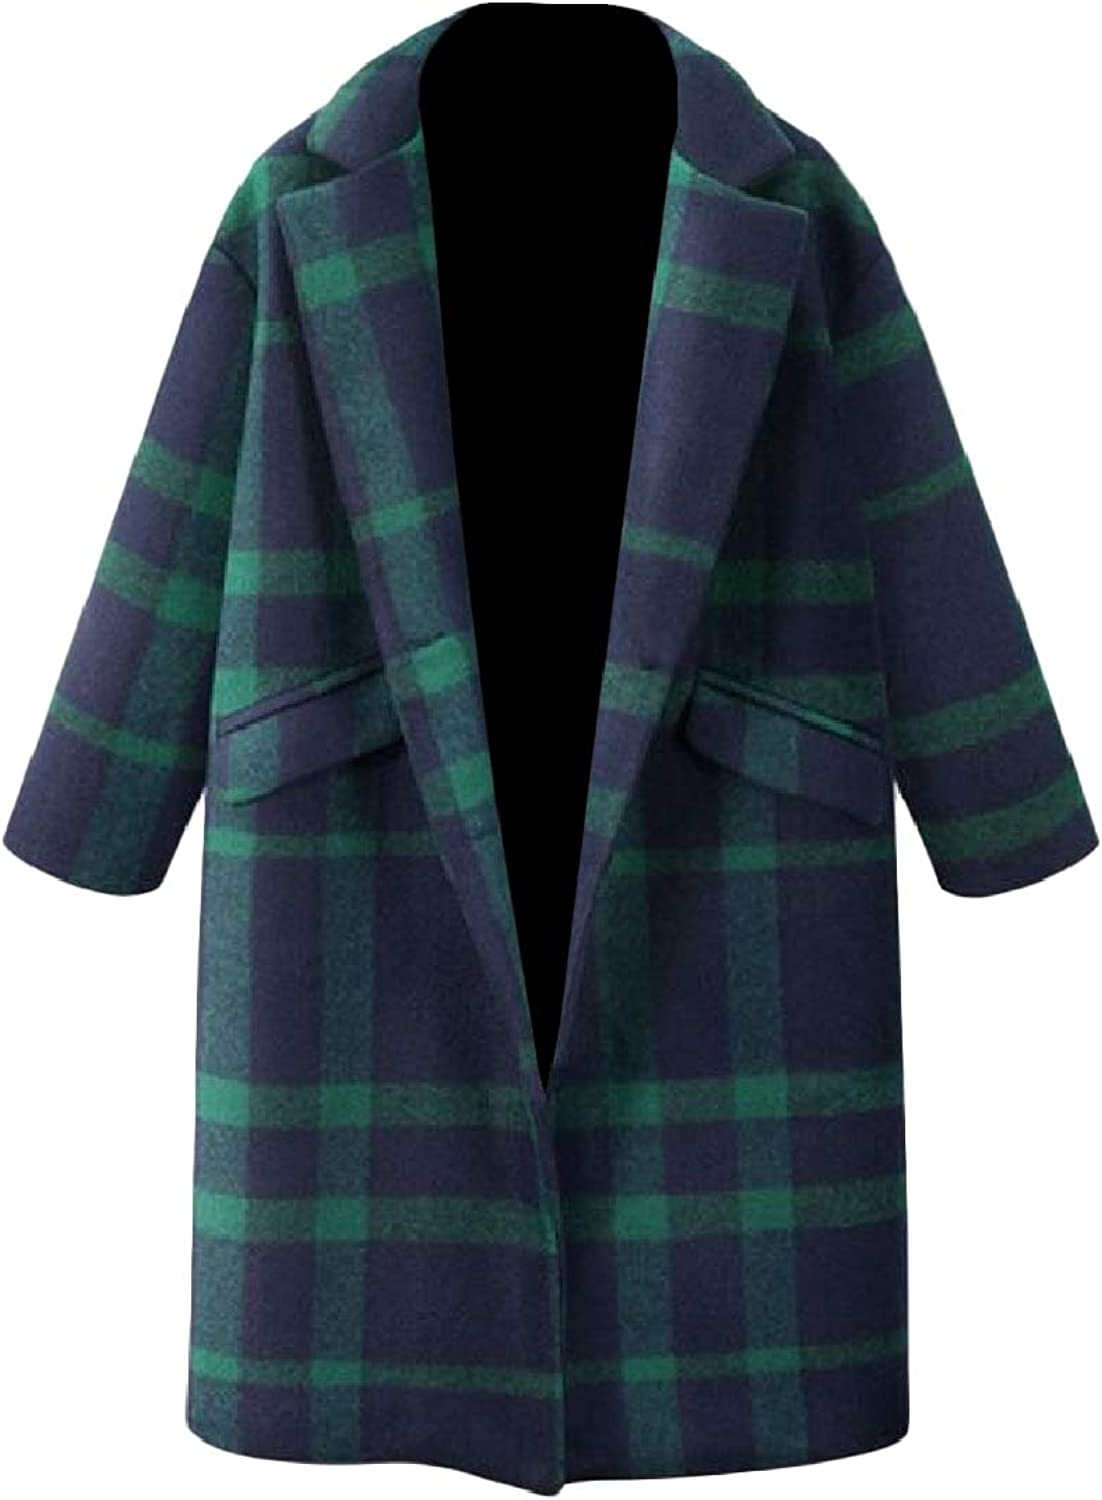 Coolhere Women's Thicken Plaid Pattern Turn Down Collar WoolBlend Overcoat Trench Coat